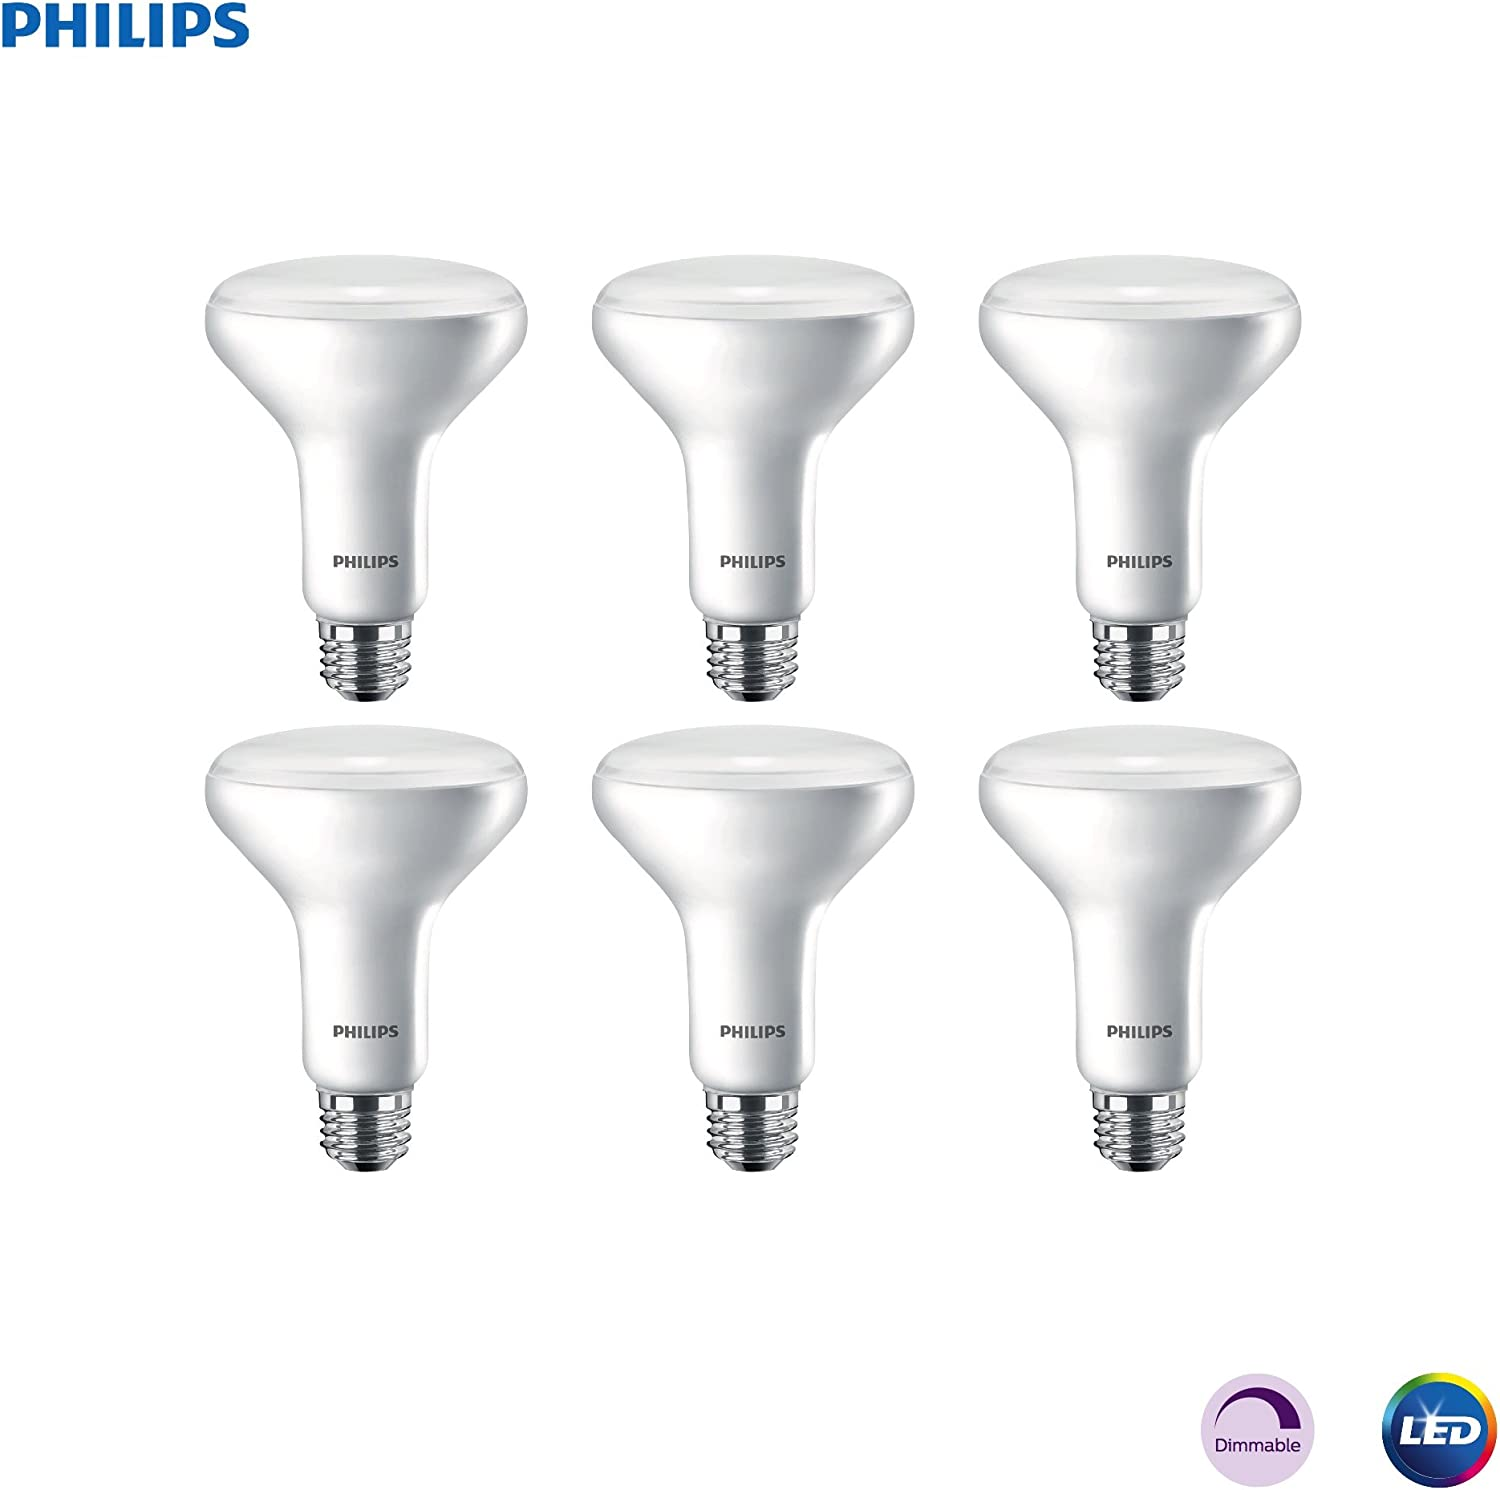 Philips LED Dimmable BR30 Light Bulb: 650-Lumen, 2700-Kelvin, 11-Watt (65-Watt Equivalent) E26 Base, Frosted, Soft White, 6-Pack